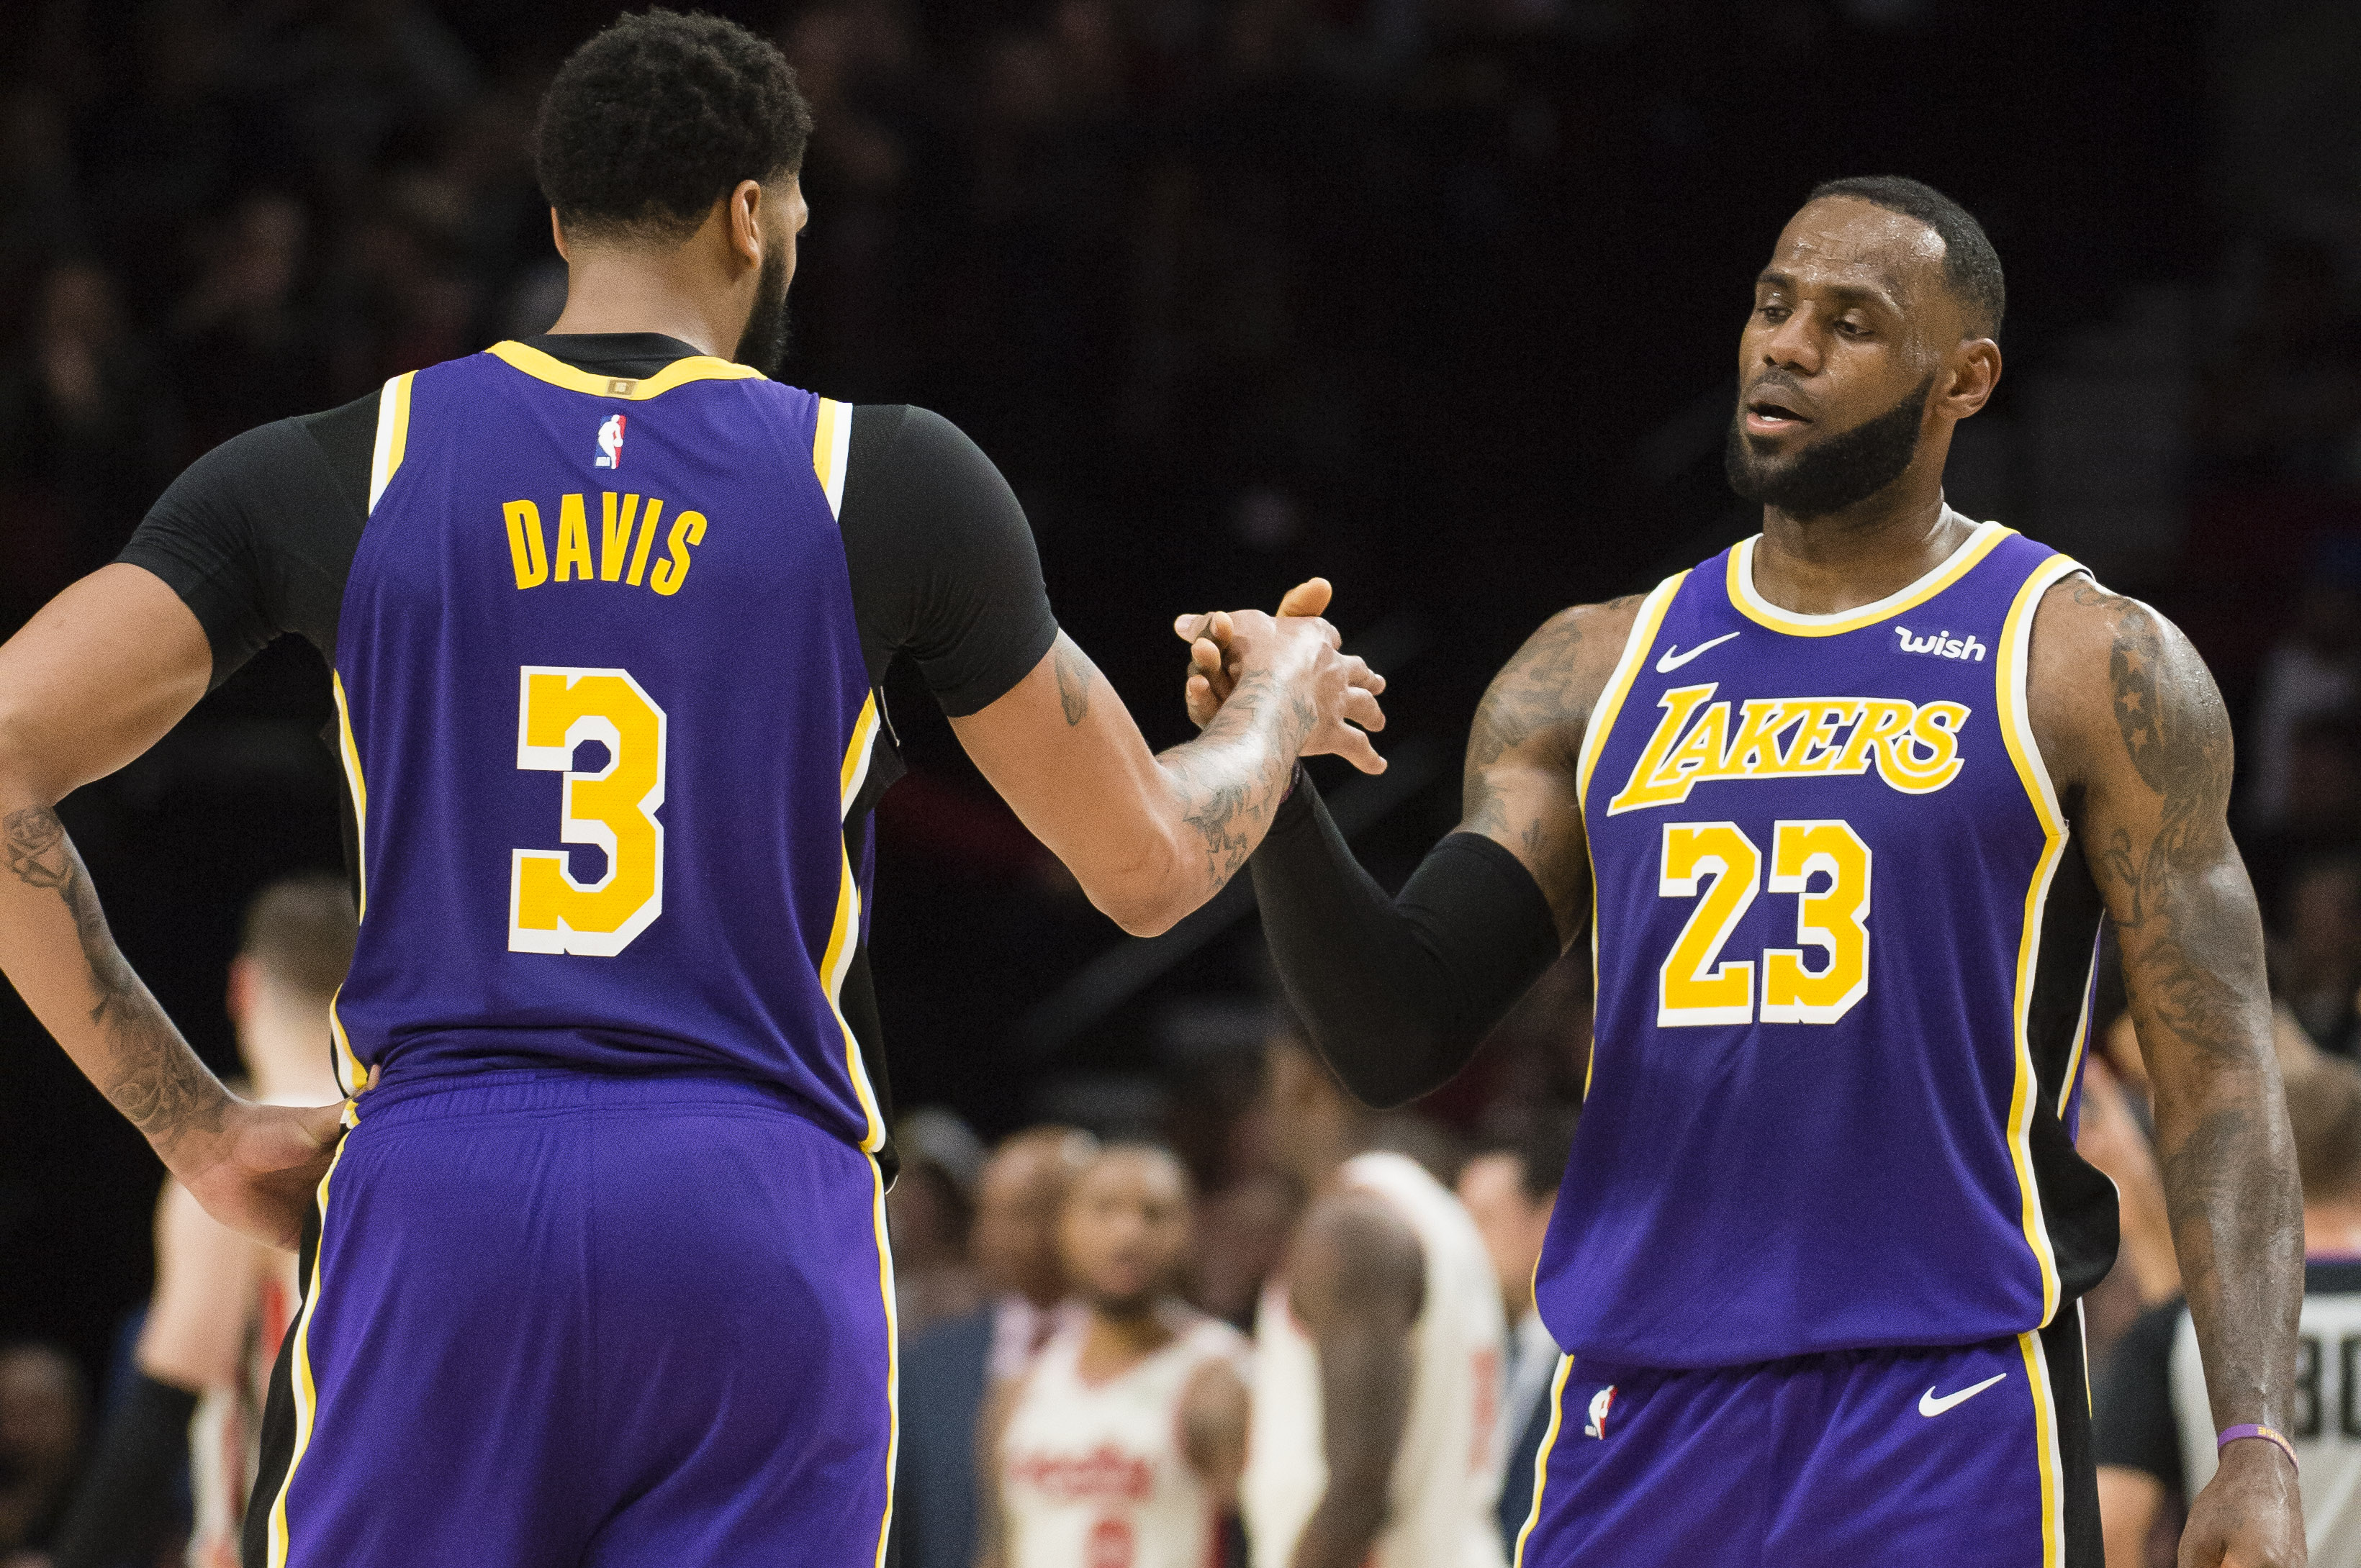 Los Angeles Lakers forward Anthony Davis and forward LeBron James celebrate late in the second half against the Portland Trail Blazers at Moda Center. The Los Angeles Lakers beat the Portland Trail Blazers 136-113.